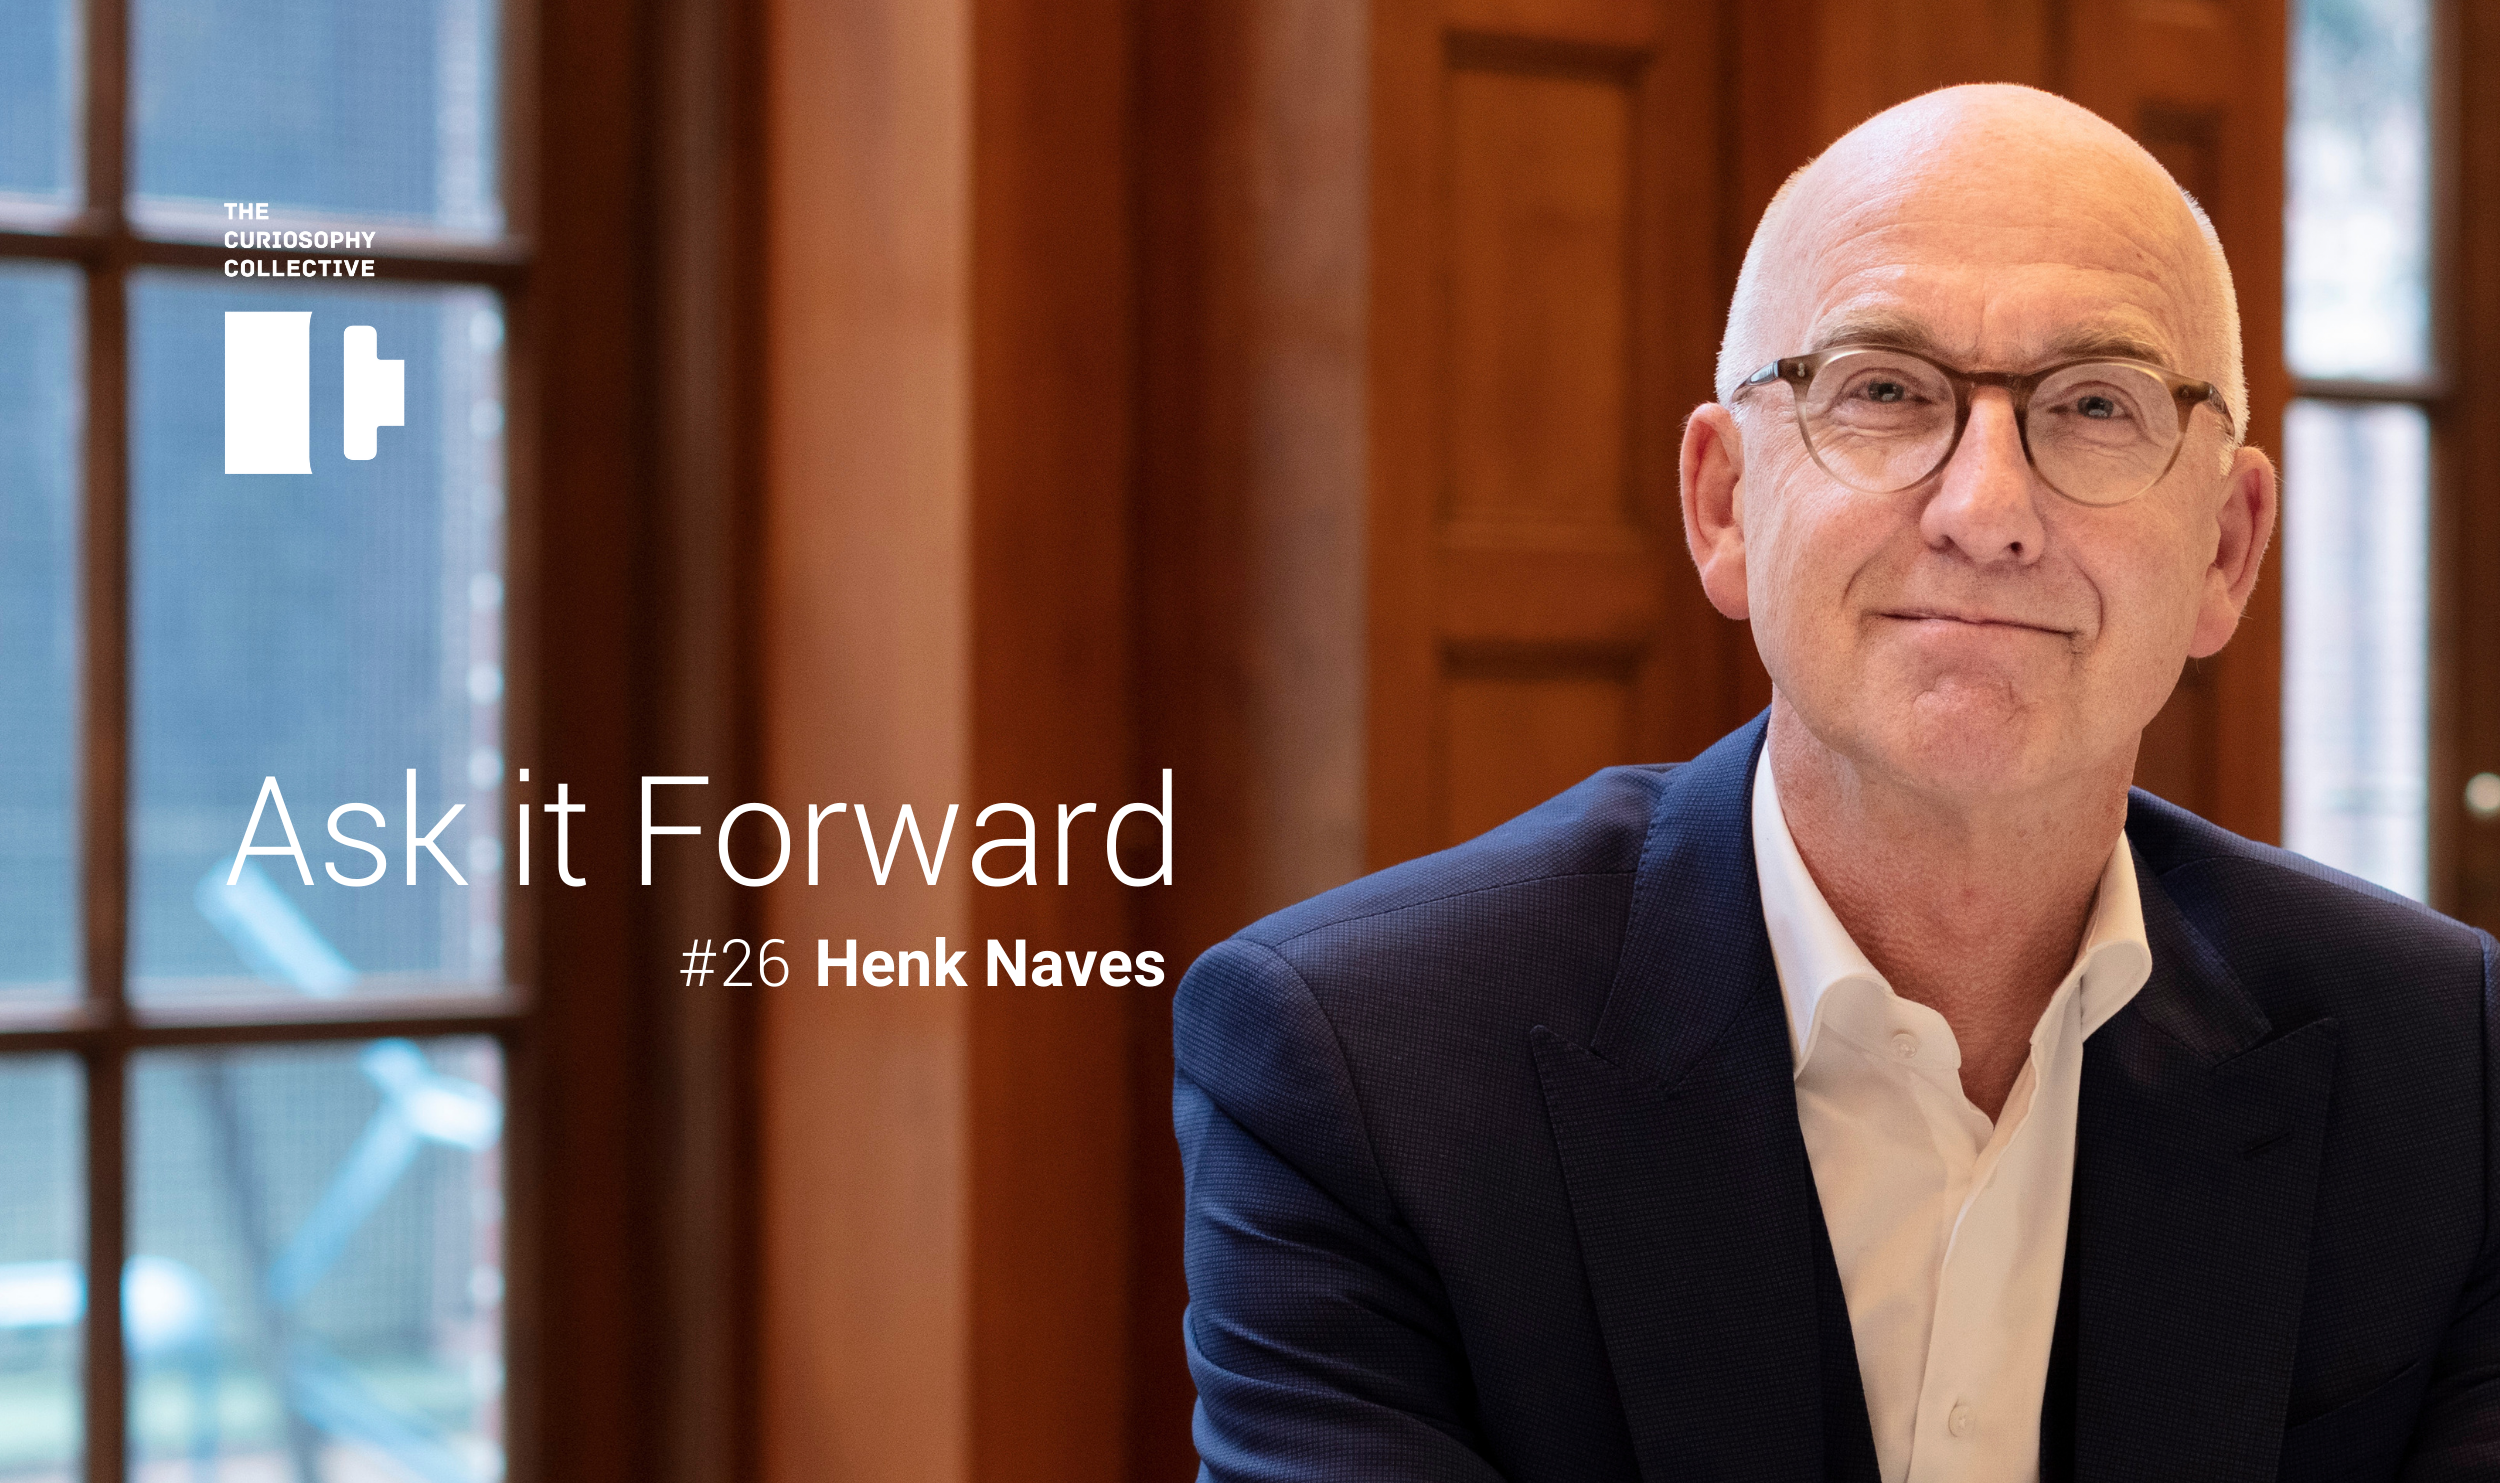 Ask it Forward #26 Henk Naves